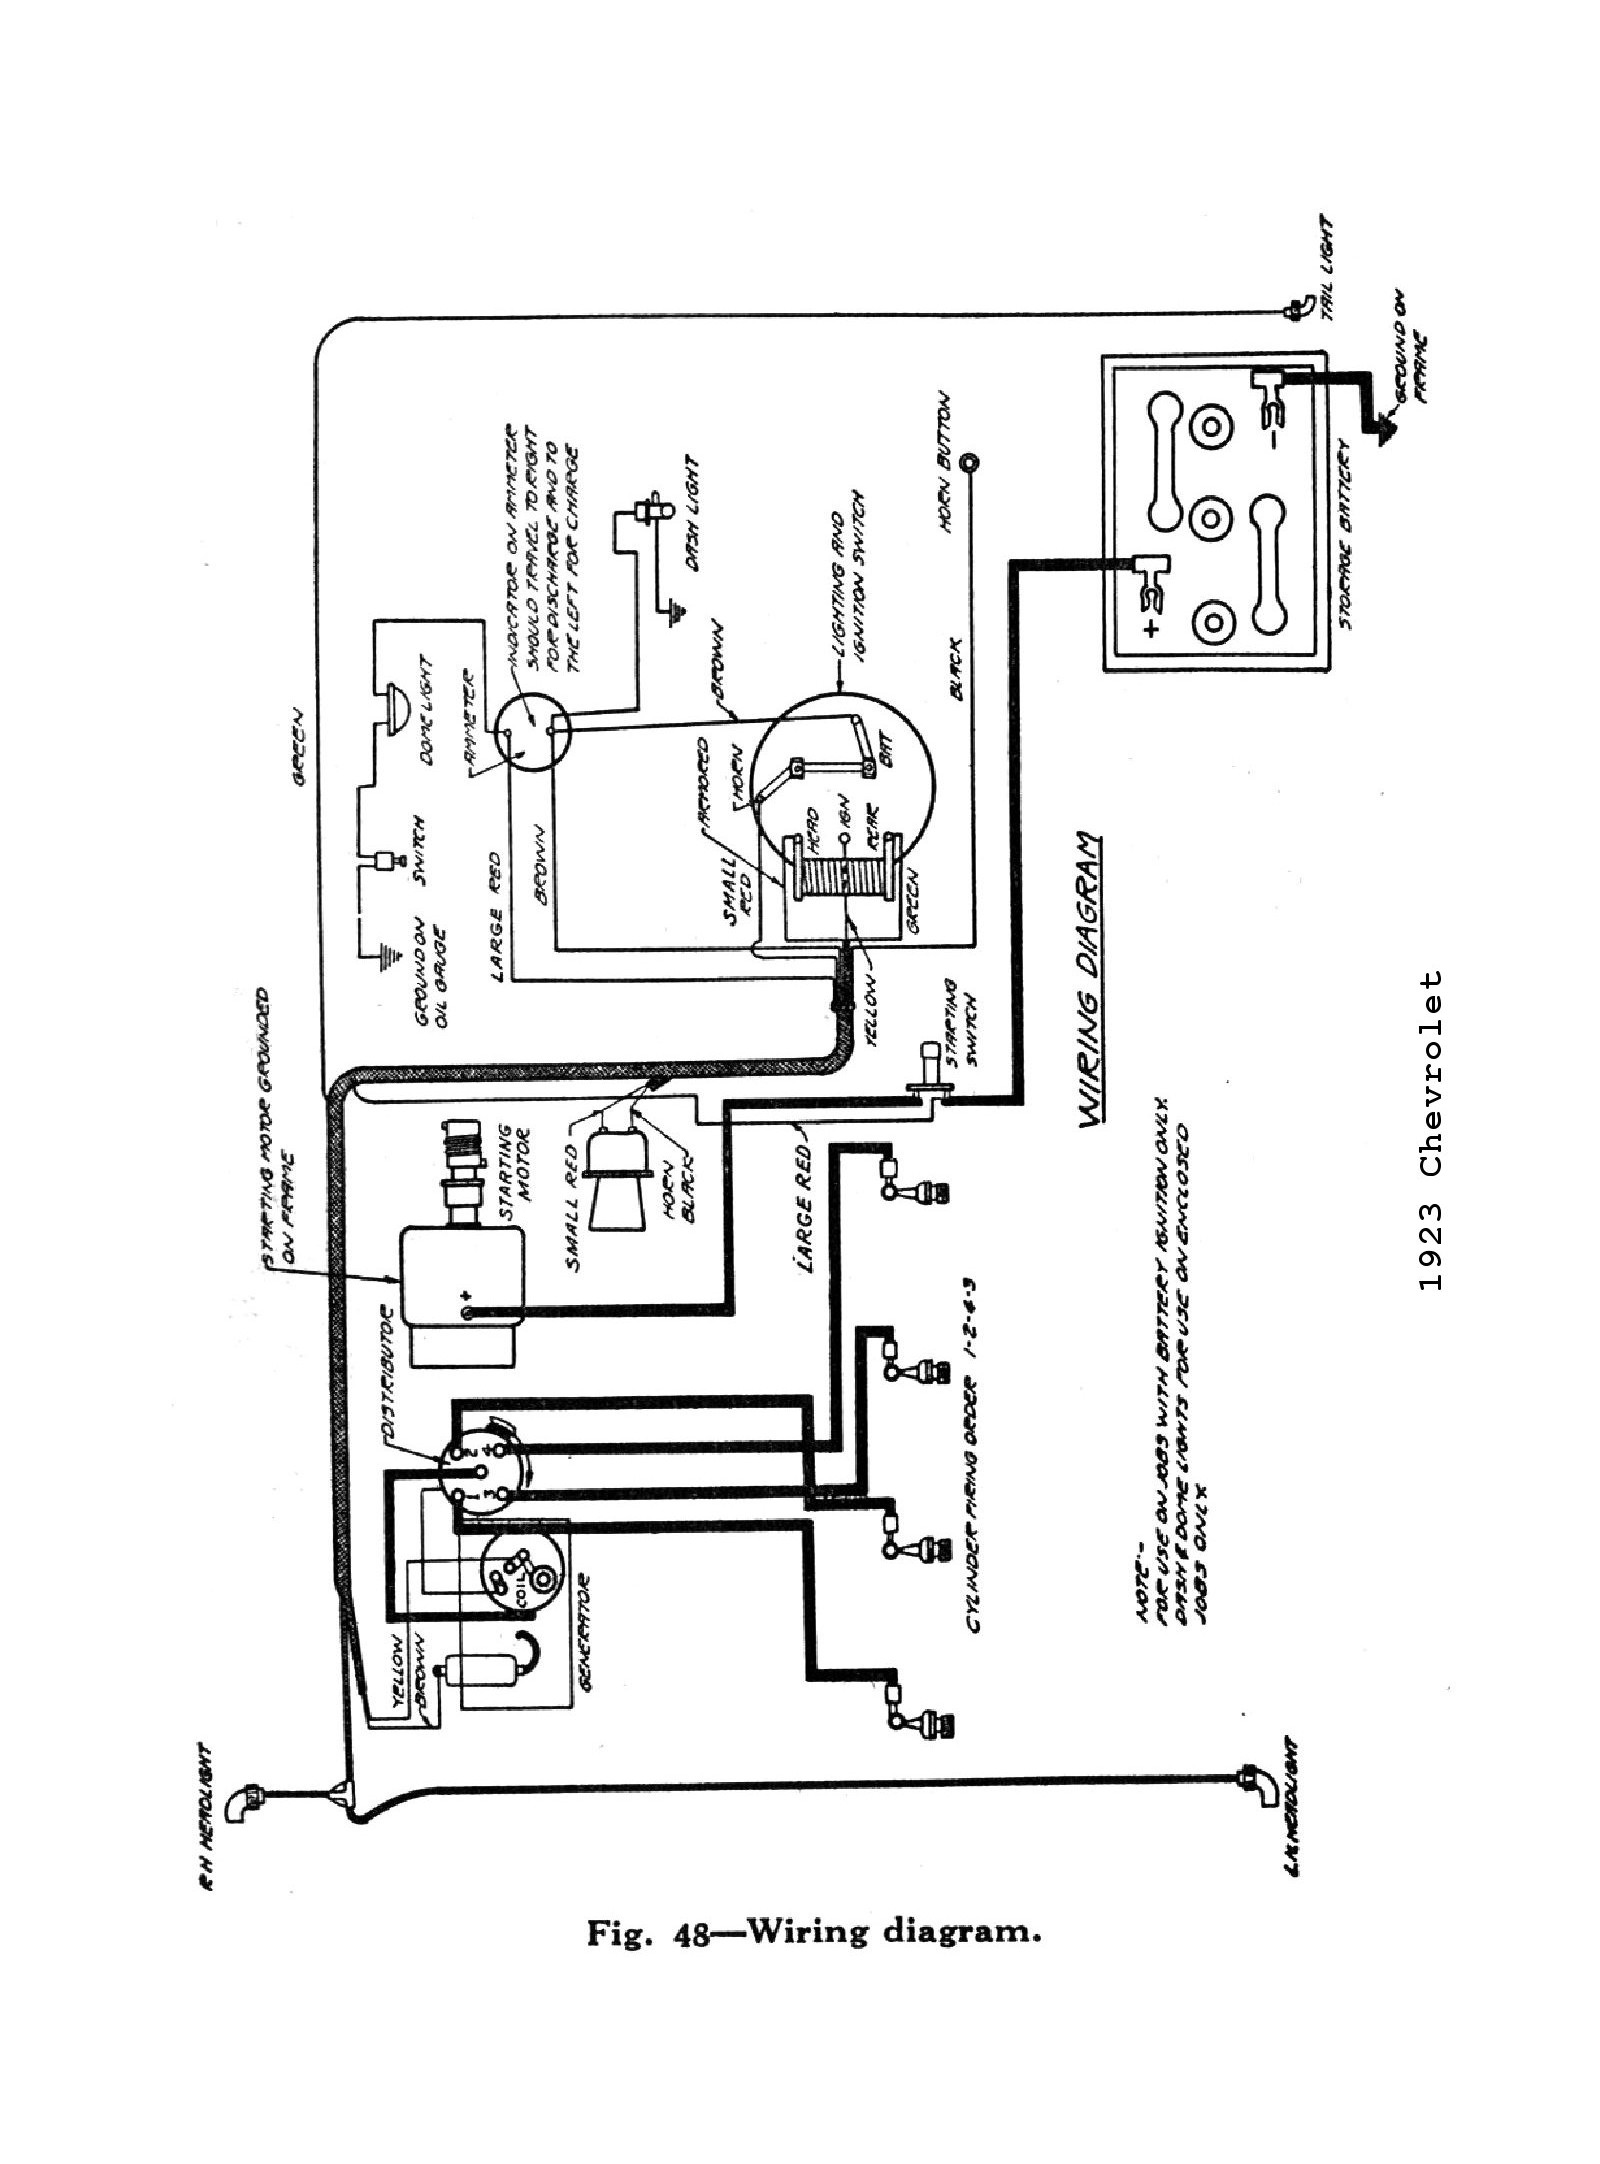 1941 Dodge Wiring Diagram Simple Schema 1954 Willys Jeep Schematic Chevy Diagrams Stereo 1923 Car General